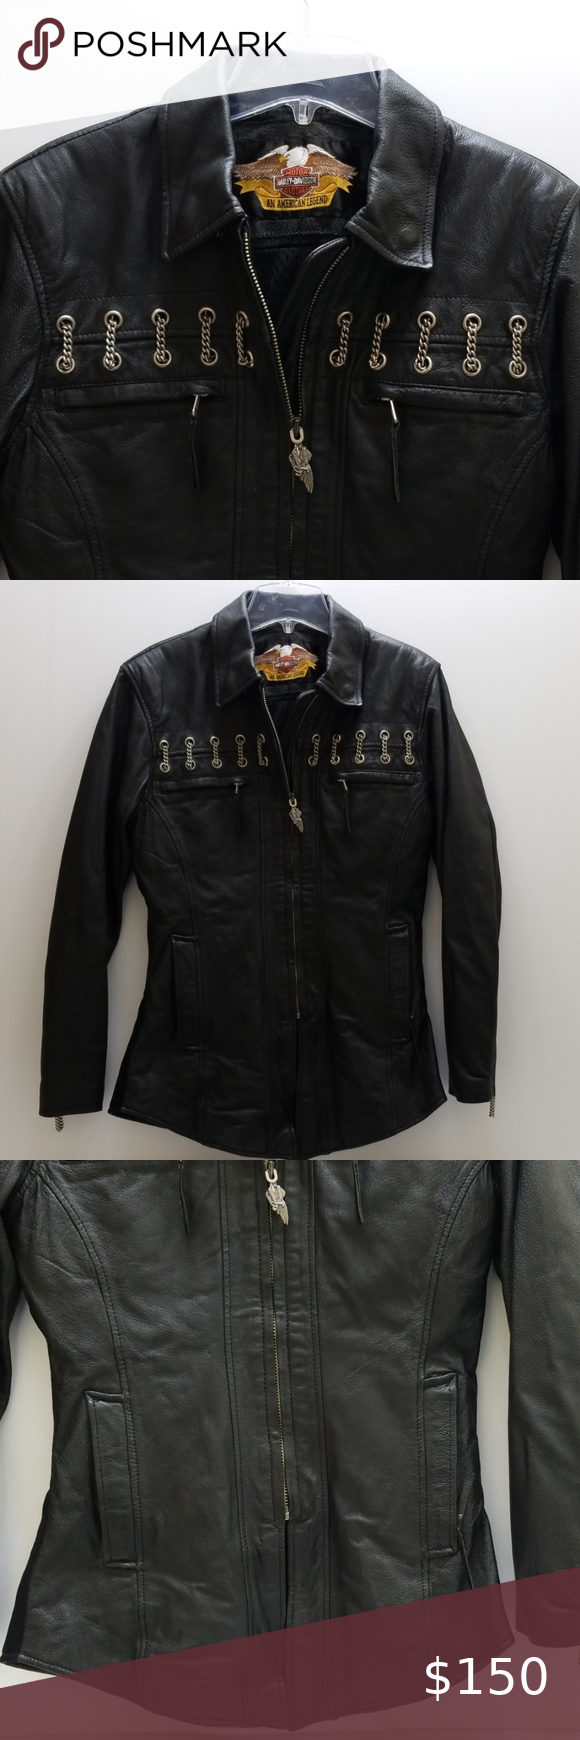 Harley davidson women leather jacket in 2020 Leather